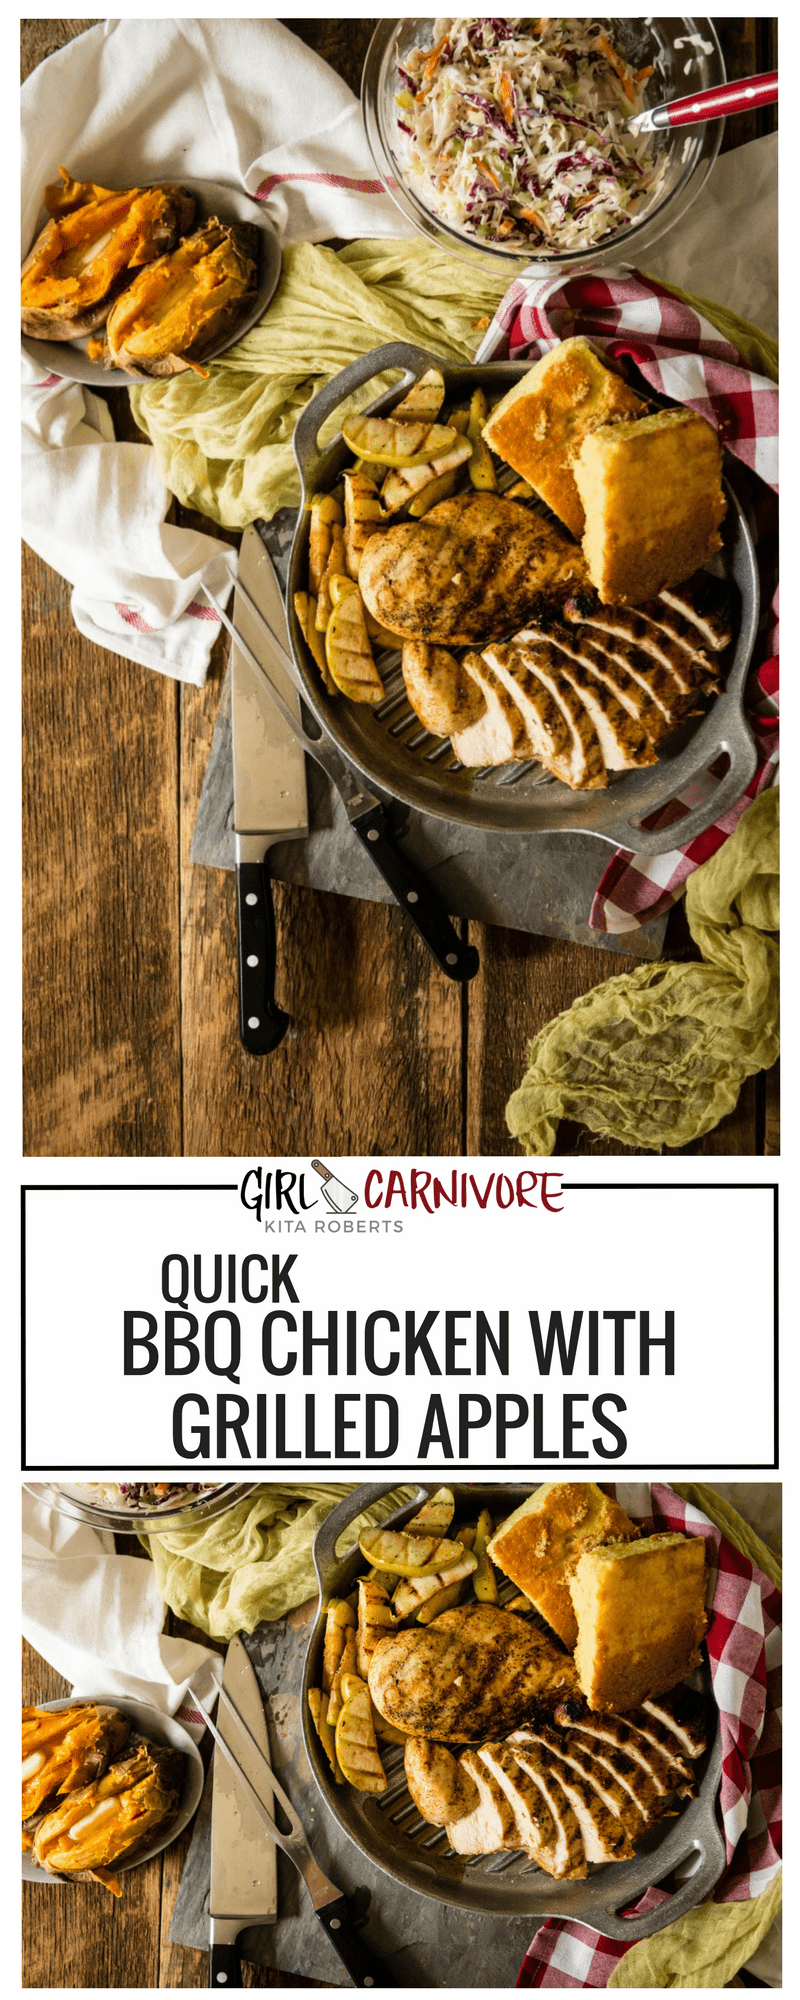 This is a weeknight quick meal that is perfect for anyone trying to eat healthy (it's Whole30 approved) and loaded with flavor! Quick BBQ Chicken with Grilled Apples.